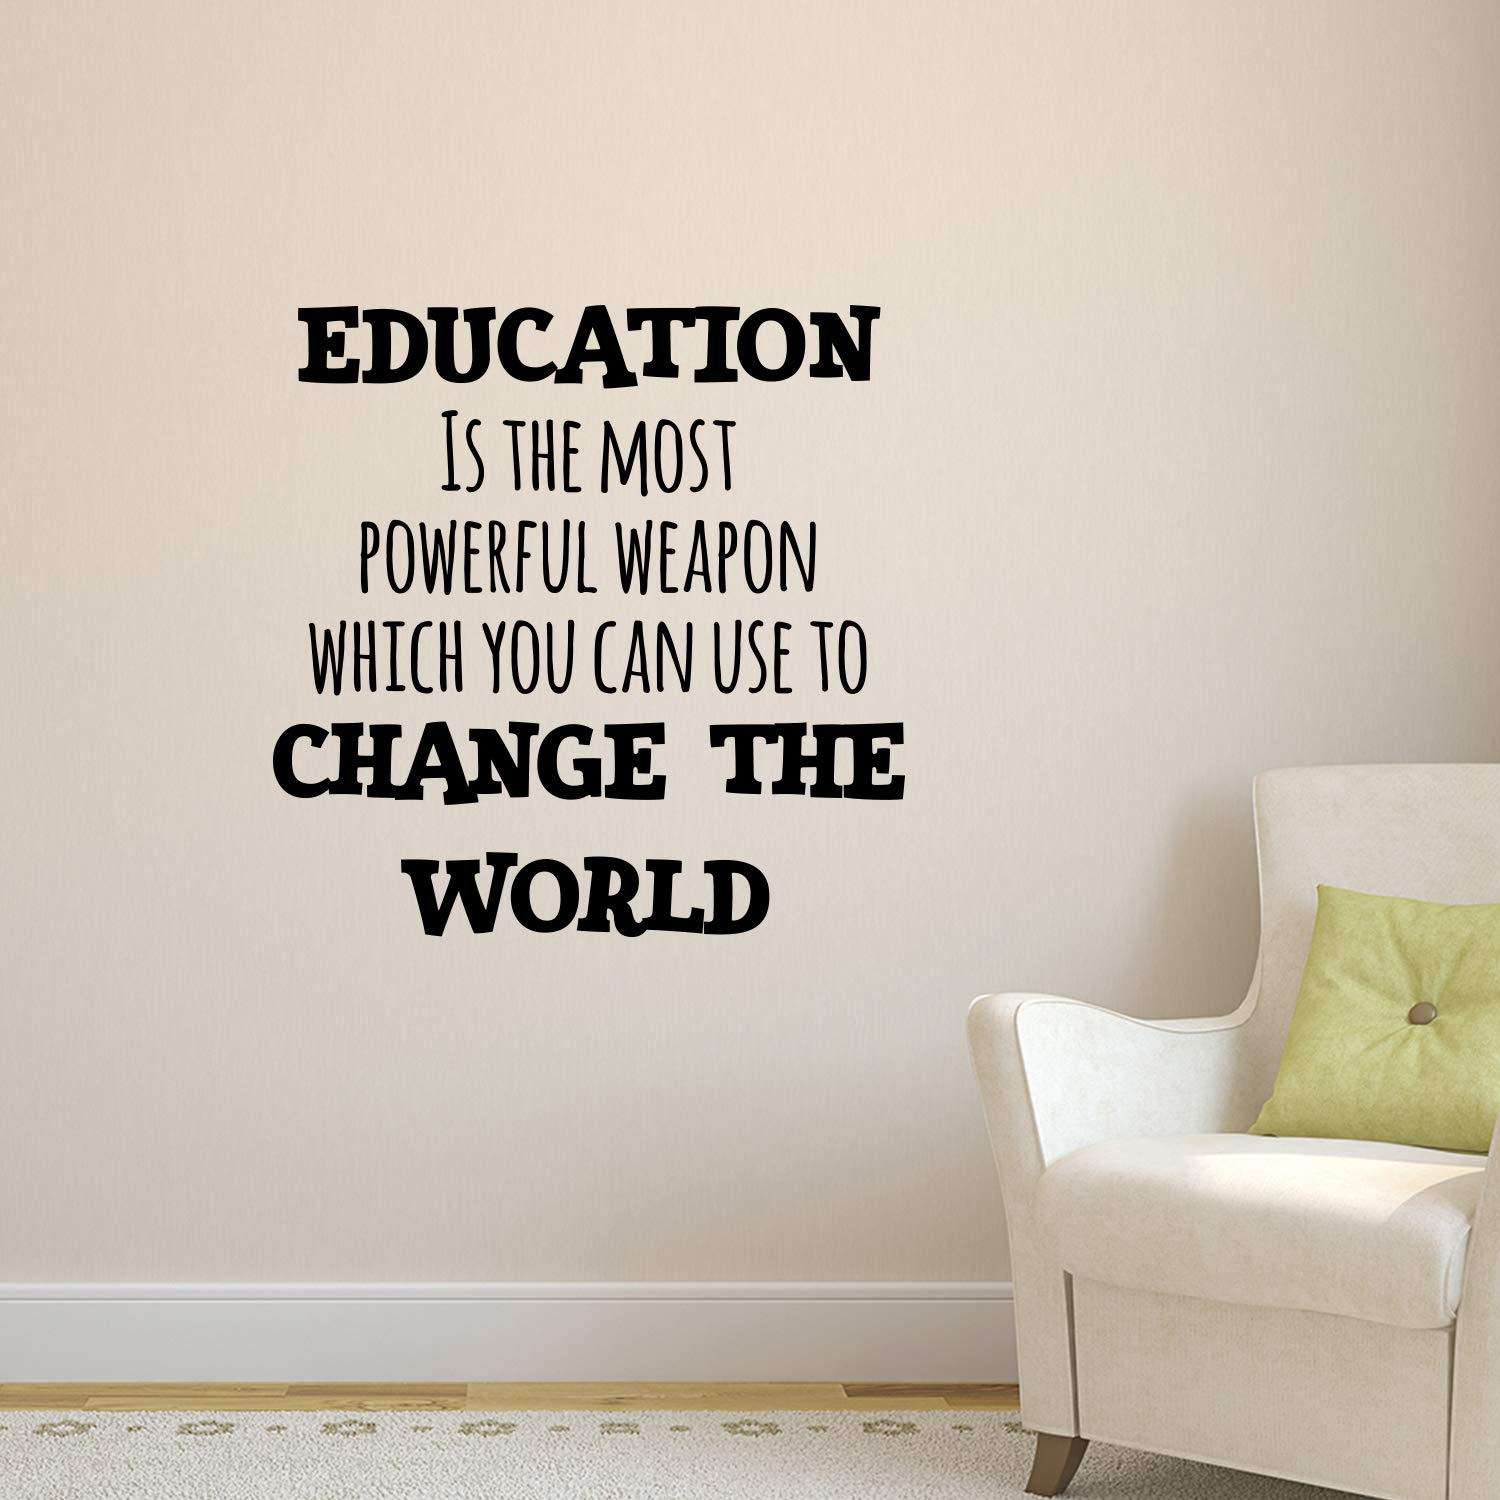 Vinyl Wall Art Decal Motivational Quote Education is The Most Powerful Weapon Which You Can Use to Change The World 23 x 23 Living Room Bedroom Home School Wall Decor Removable Sticker Pulse Vinyl